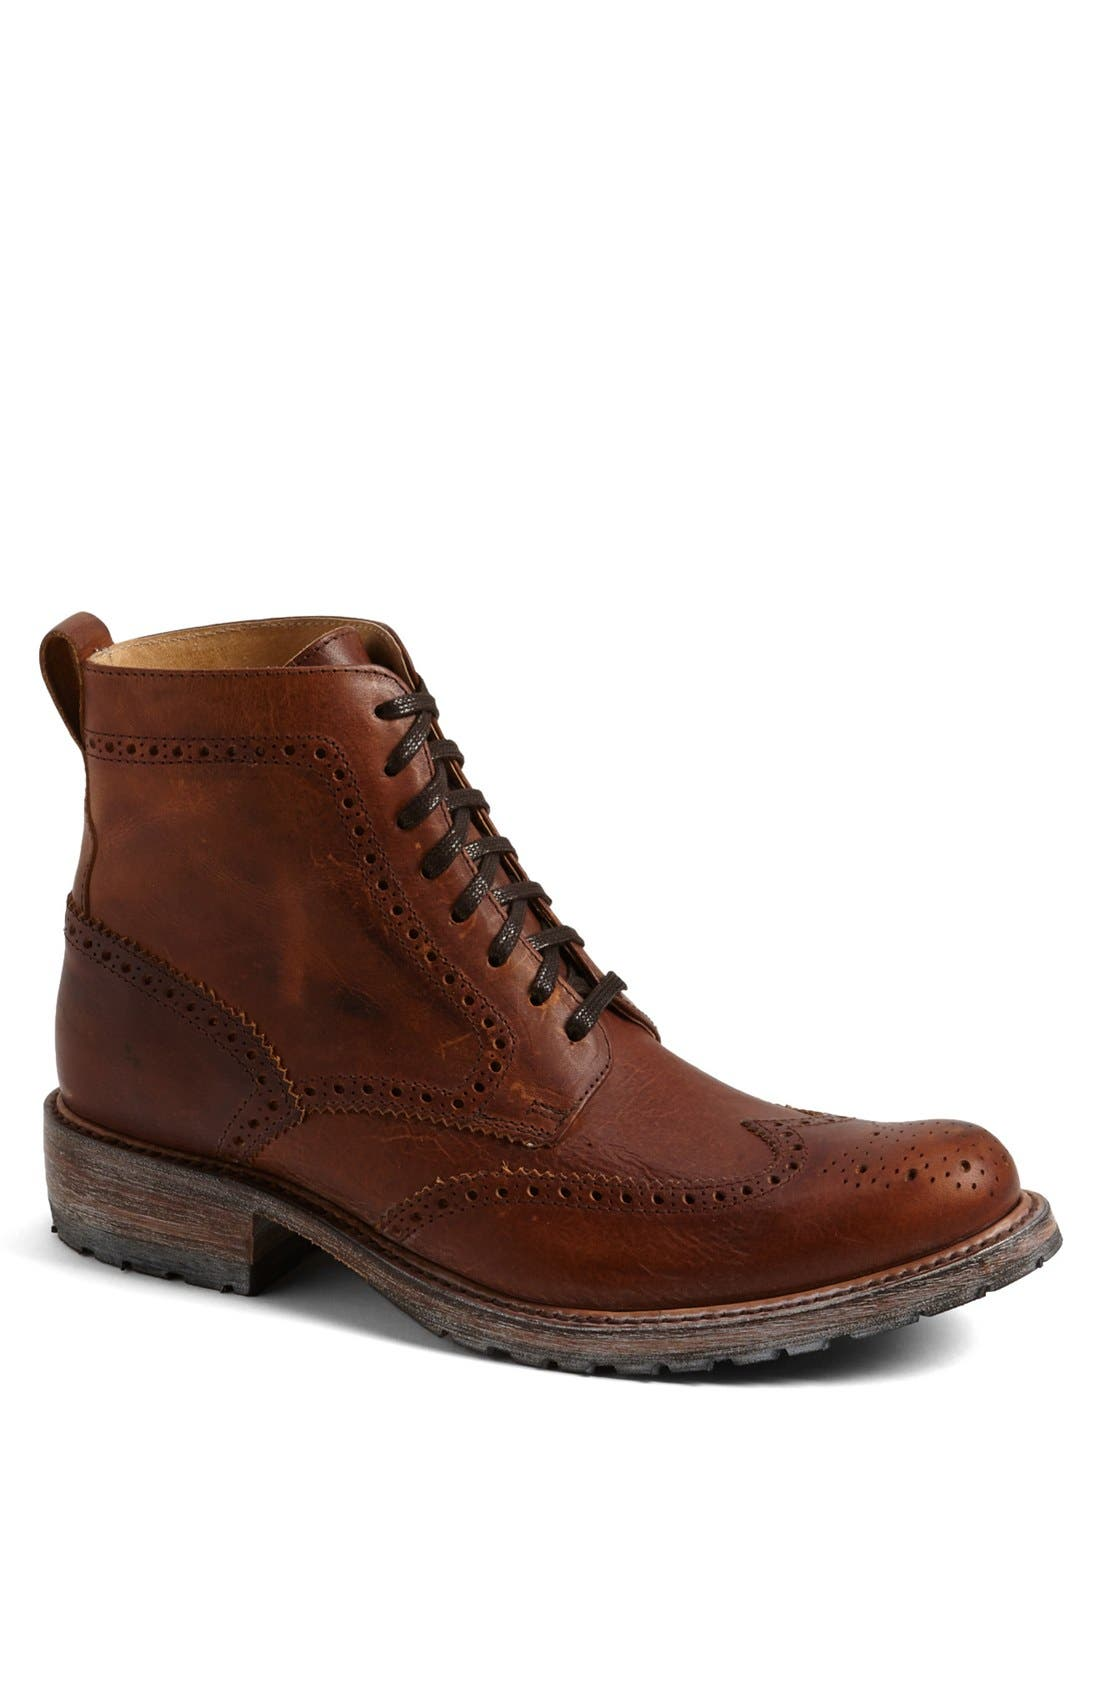 'Skye' Wingtip Boot,                             Main thumbnail 1, color,                             Tan